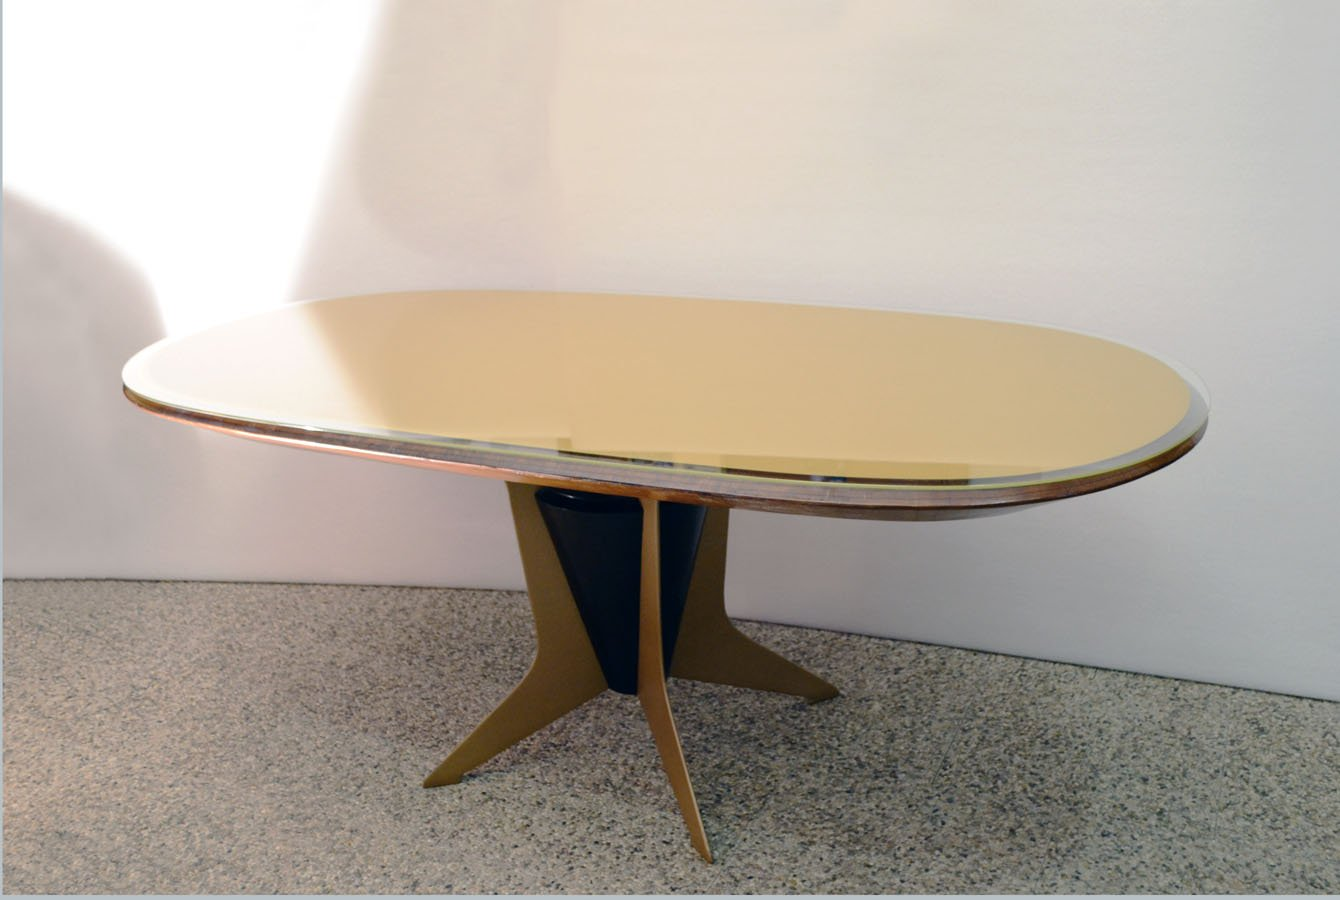 Italian Oval Dining Table in Wood Metal and Painted  : italian oval dining table in wood metal and painted glass 1950s 2 from www.pamono.co.uk size 1340 x 900 jpeg 88kB